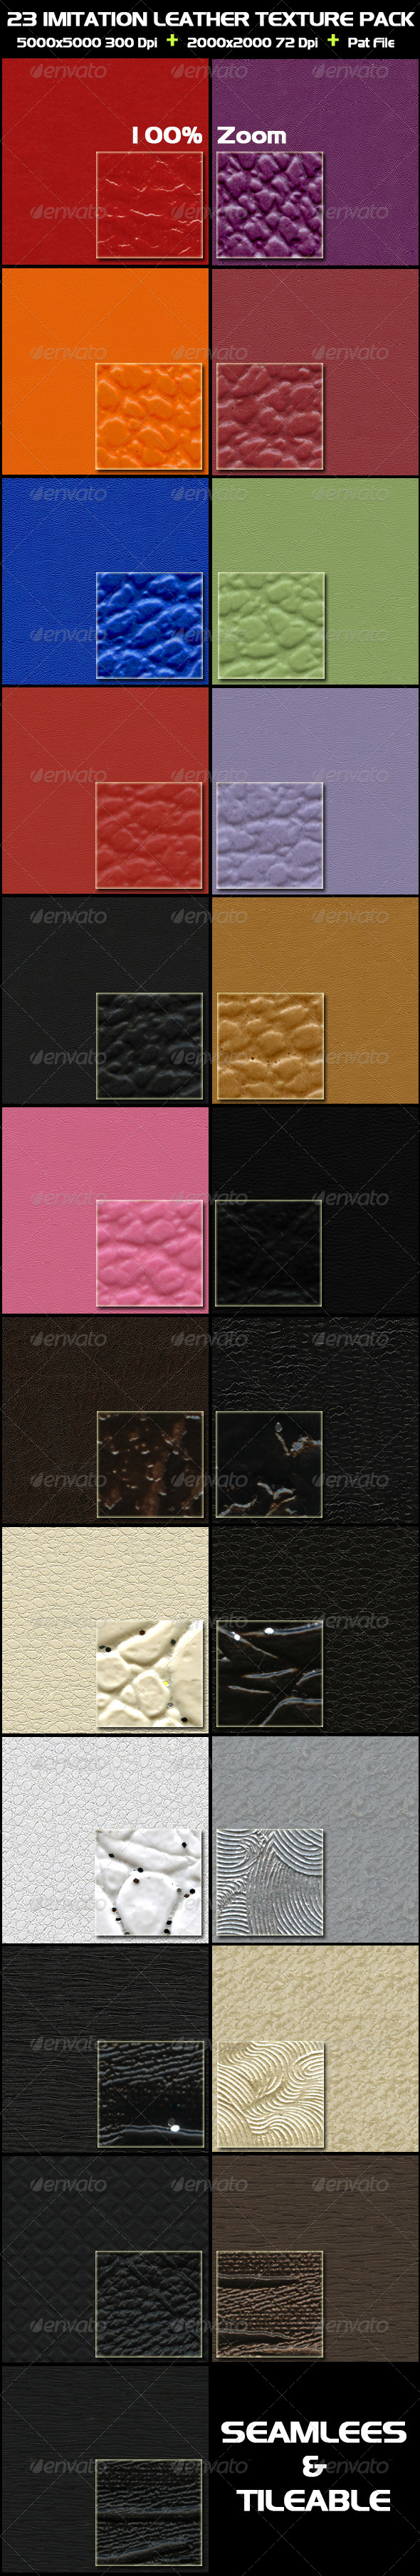 23 Imitation Leather Texture Pack - Fabric Textures